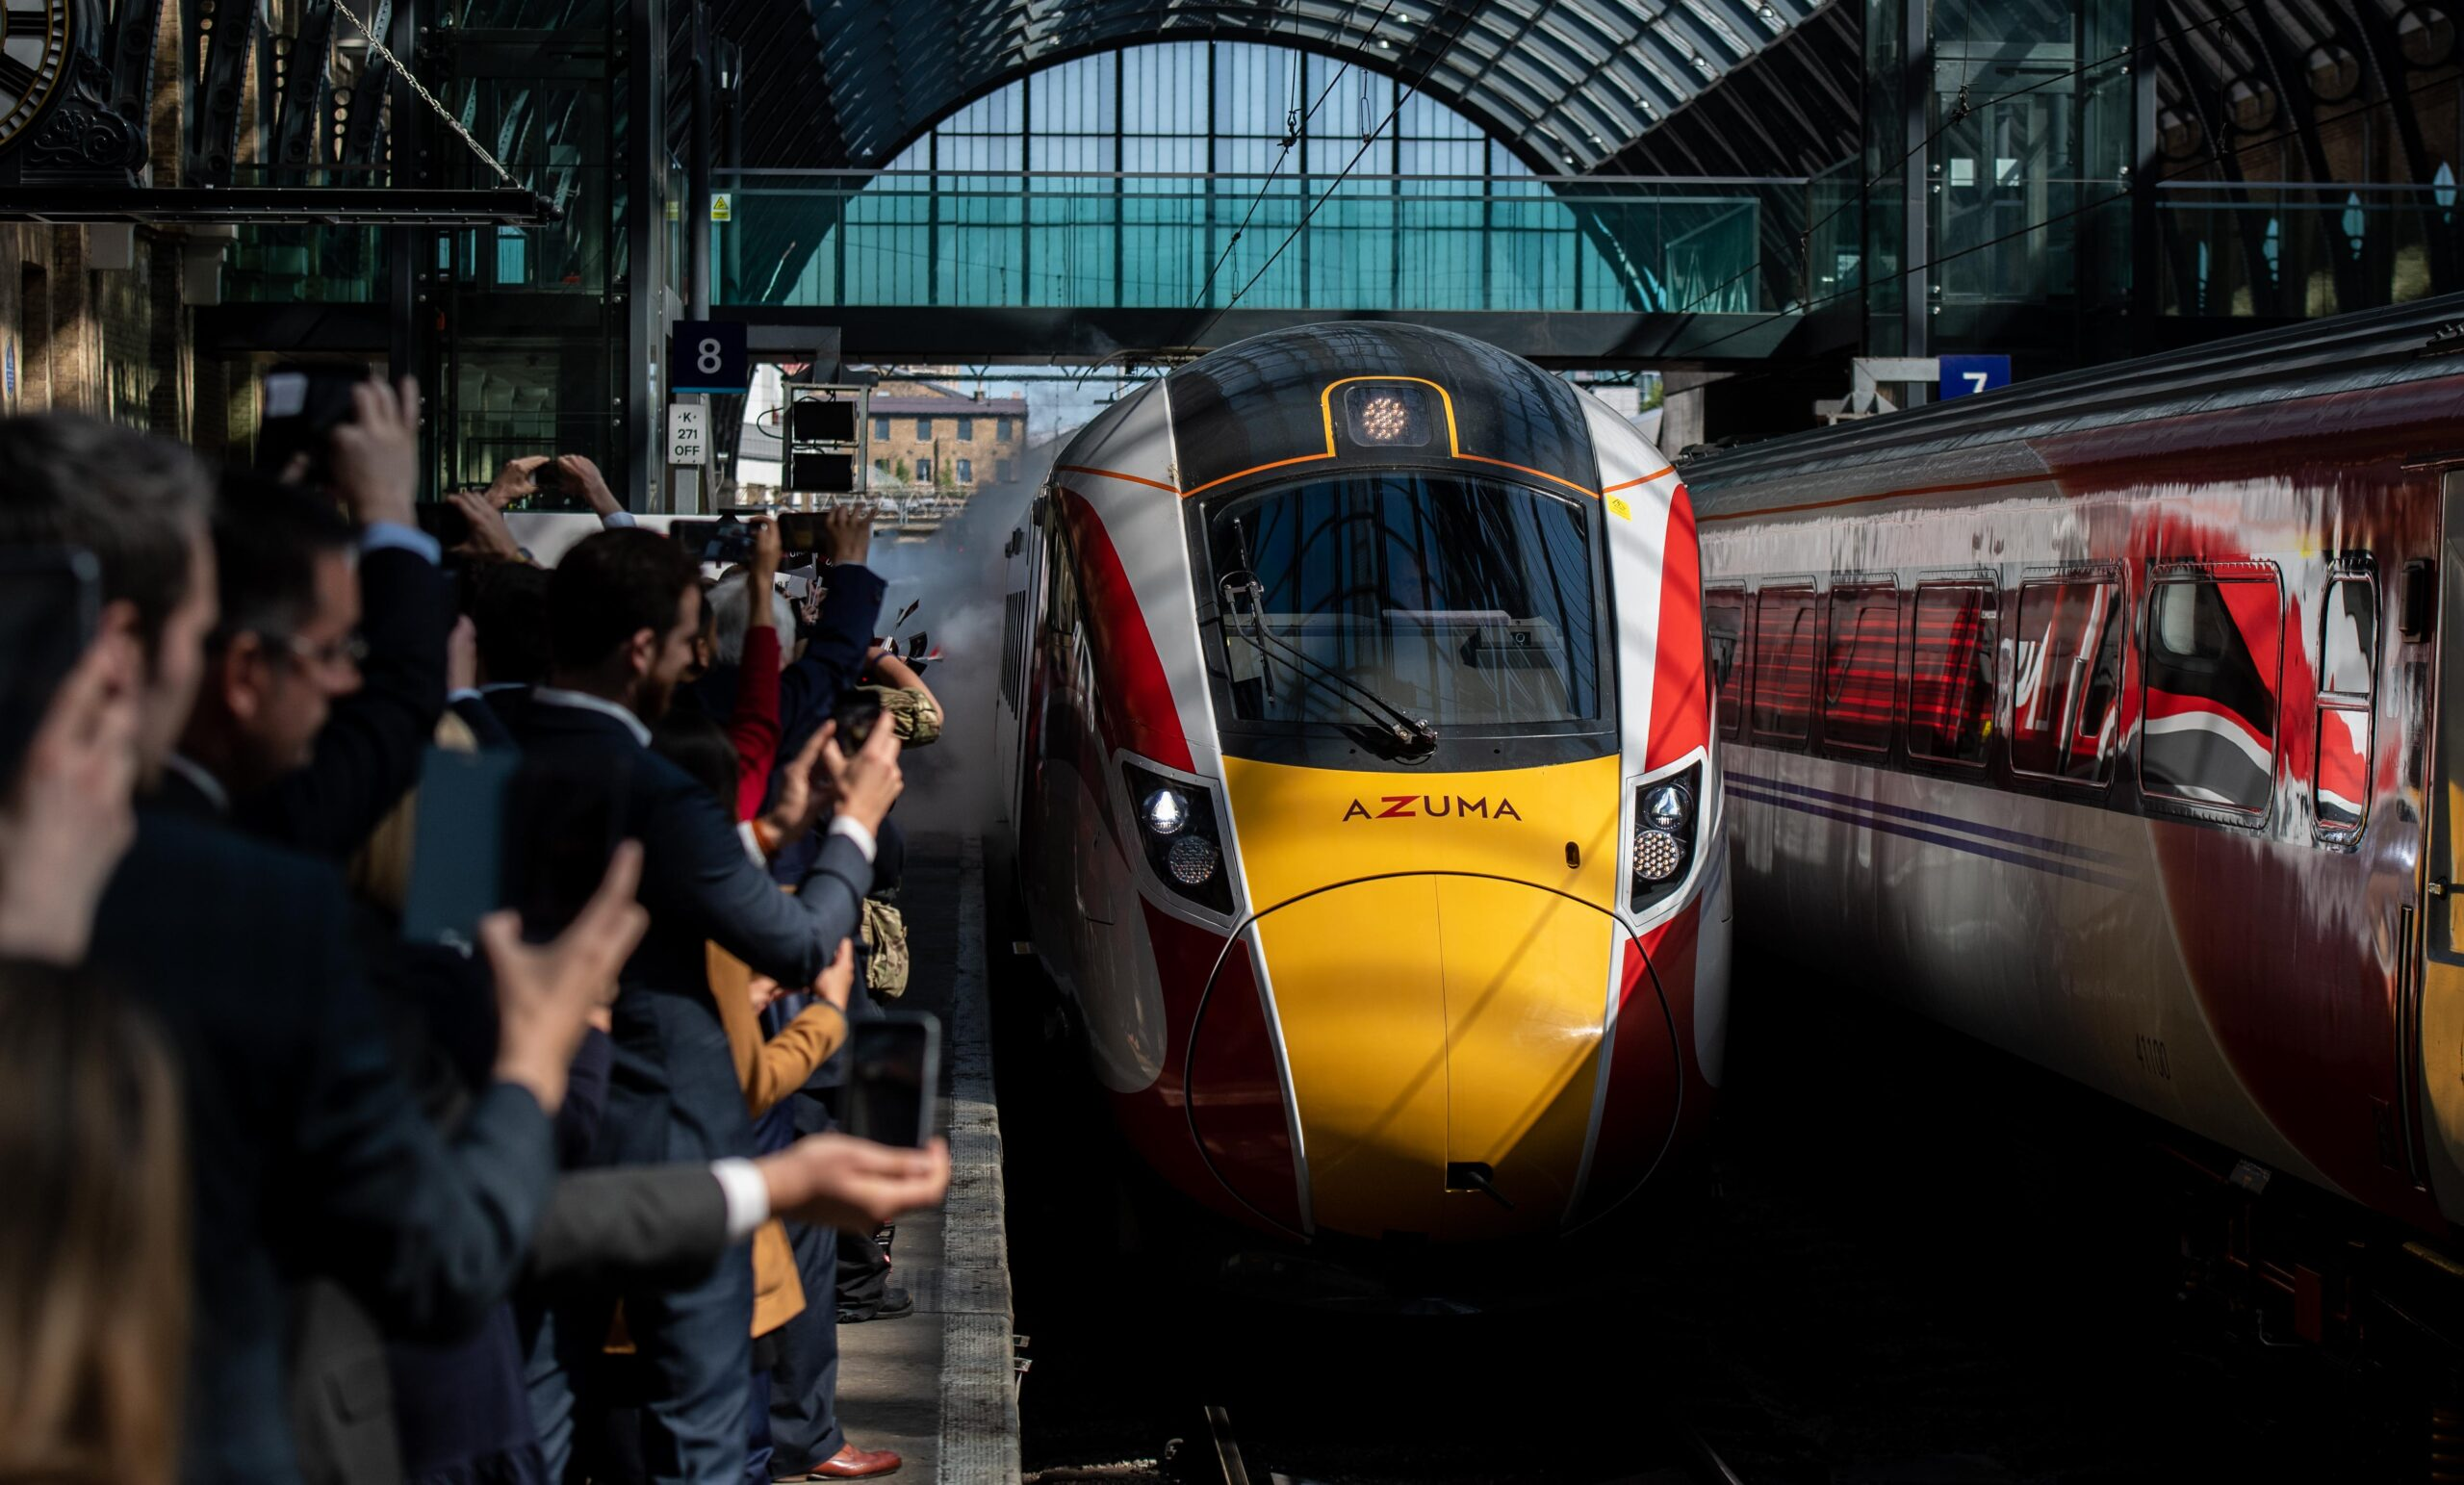 Rail revolution: Azuma launches on the East Coast